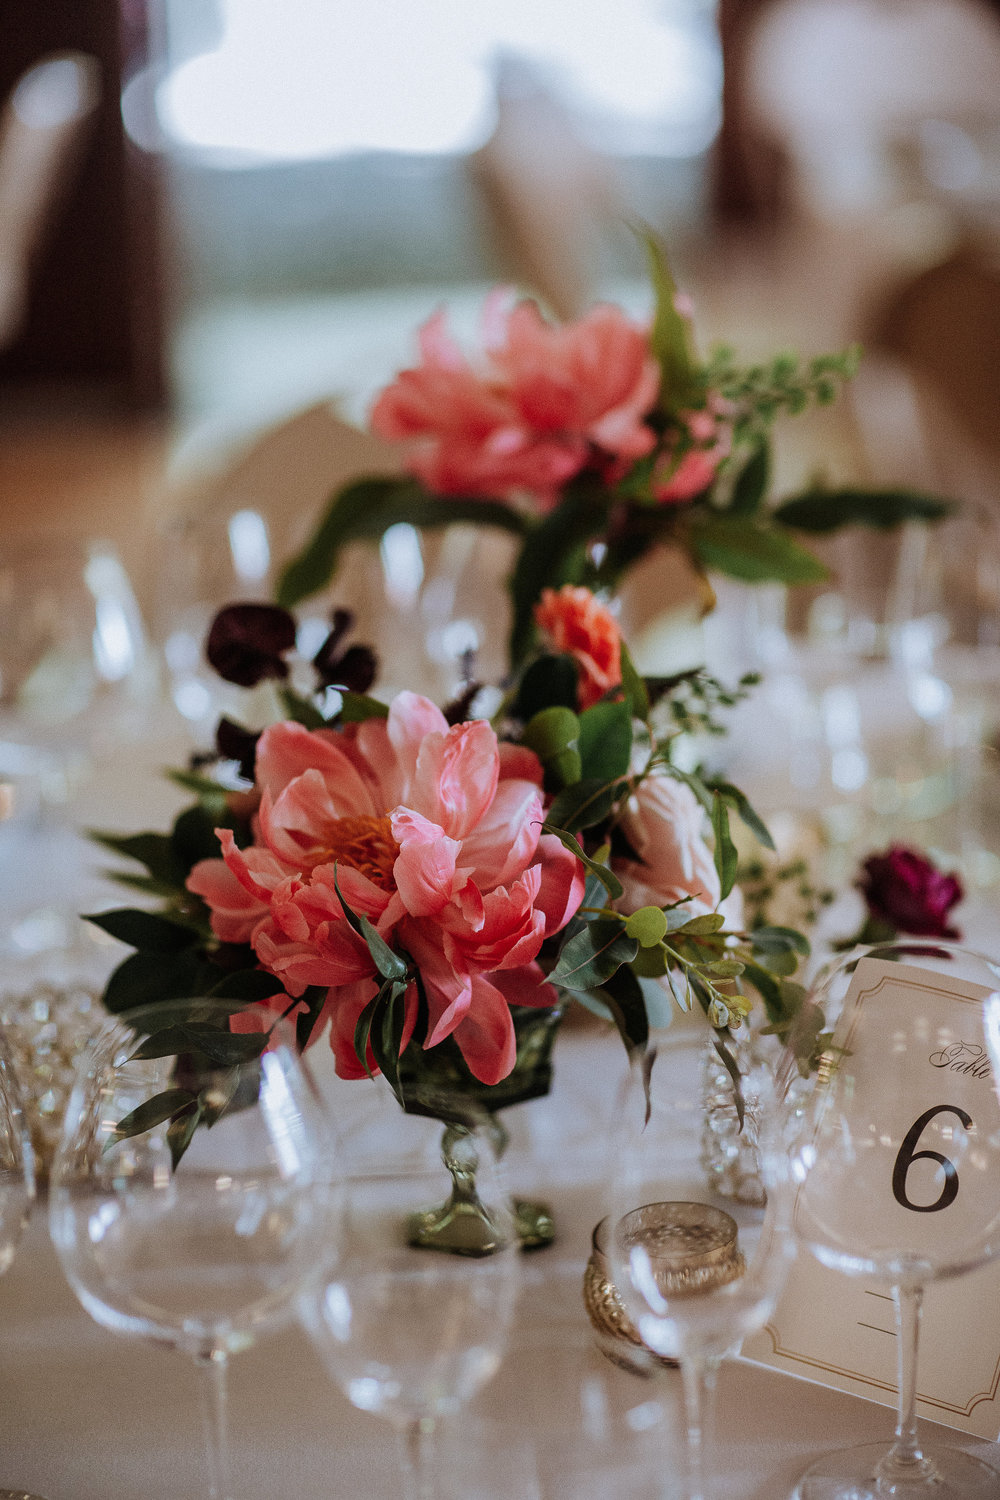 Vintage colored glass and bright florals for bohemian California wedding by Venn Floral, photographed by Gretchen Gause in Healdsburg, California.